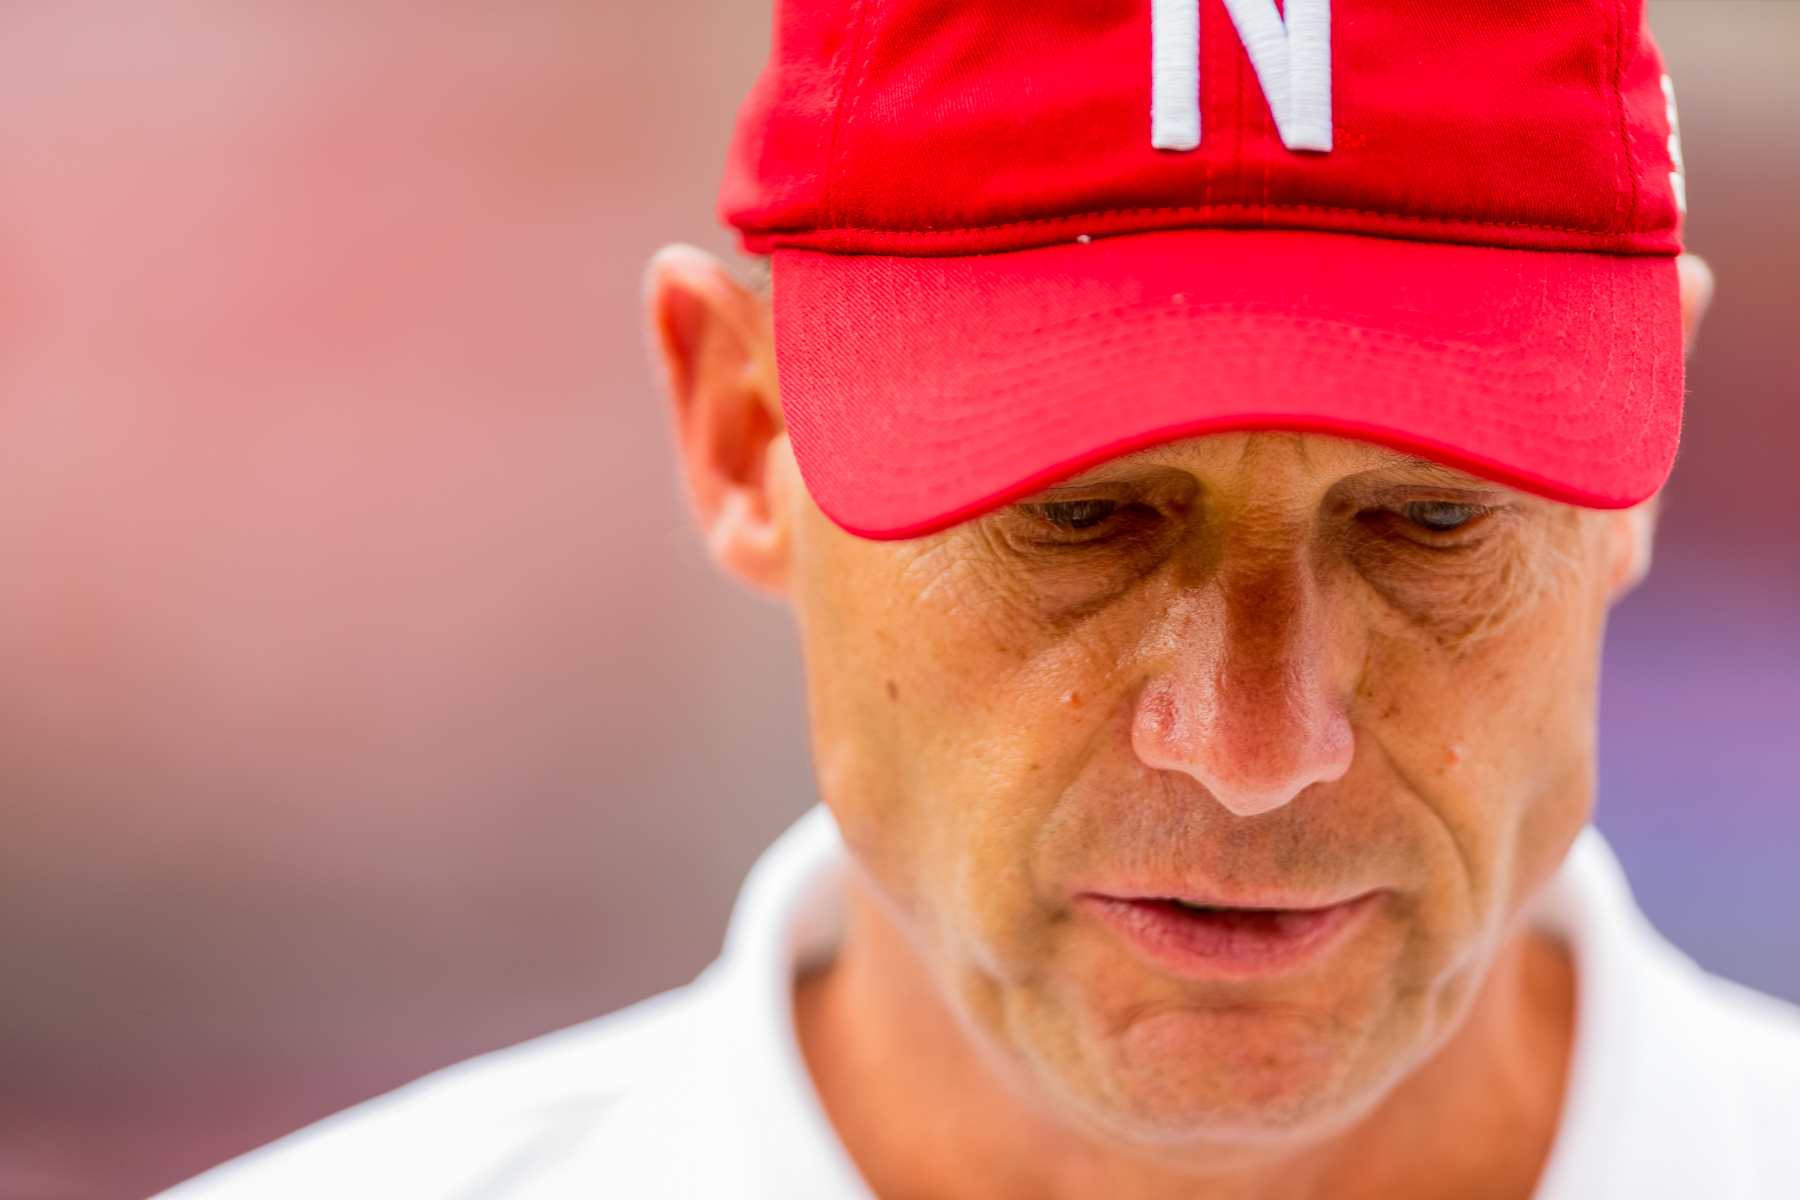 Nebraska head coach Mike Riley paces on the sidelines during Nebraska's 33-28 loss to BYU on Sept. 5, 2015. Photo by Aaron Babcock